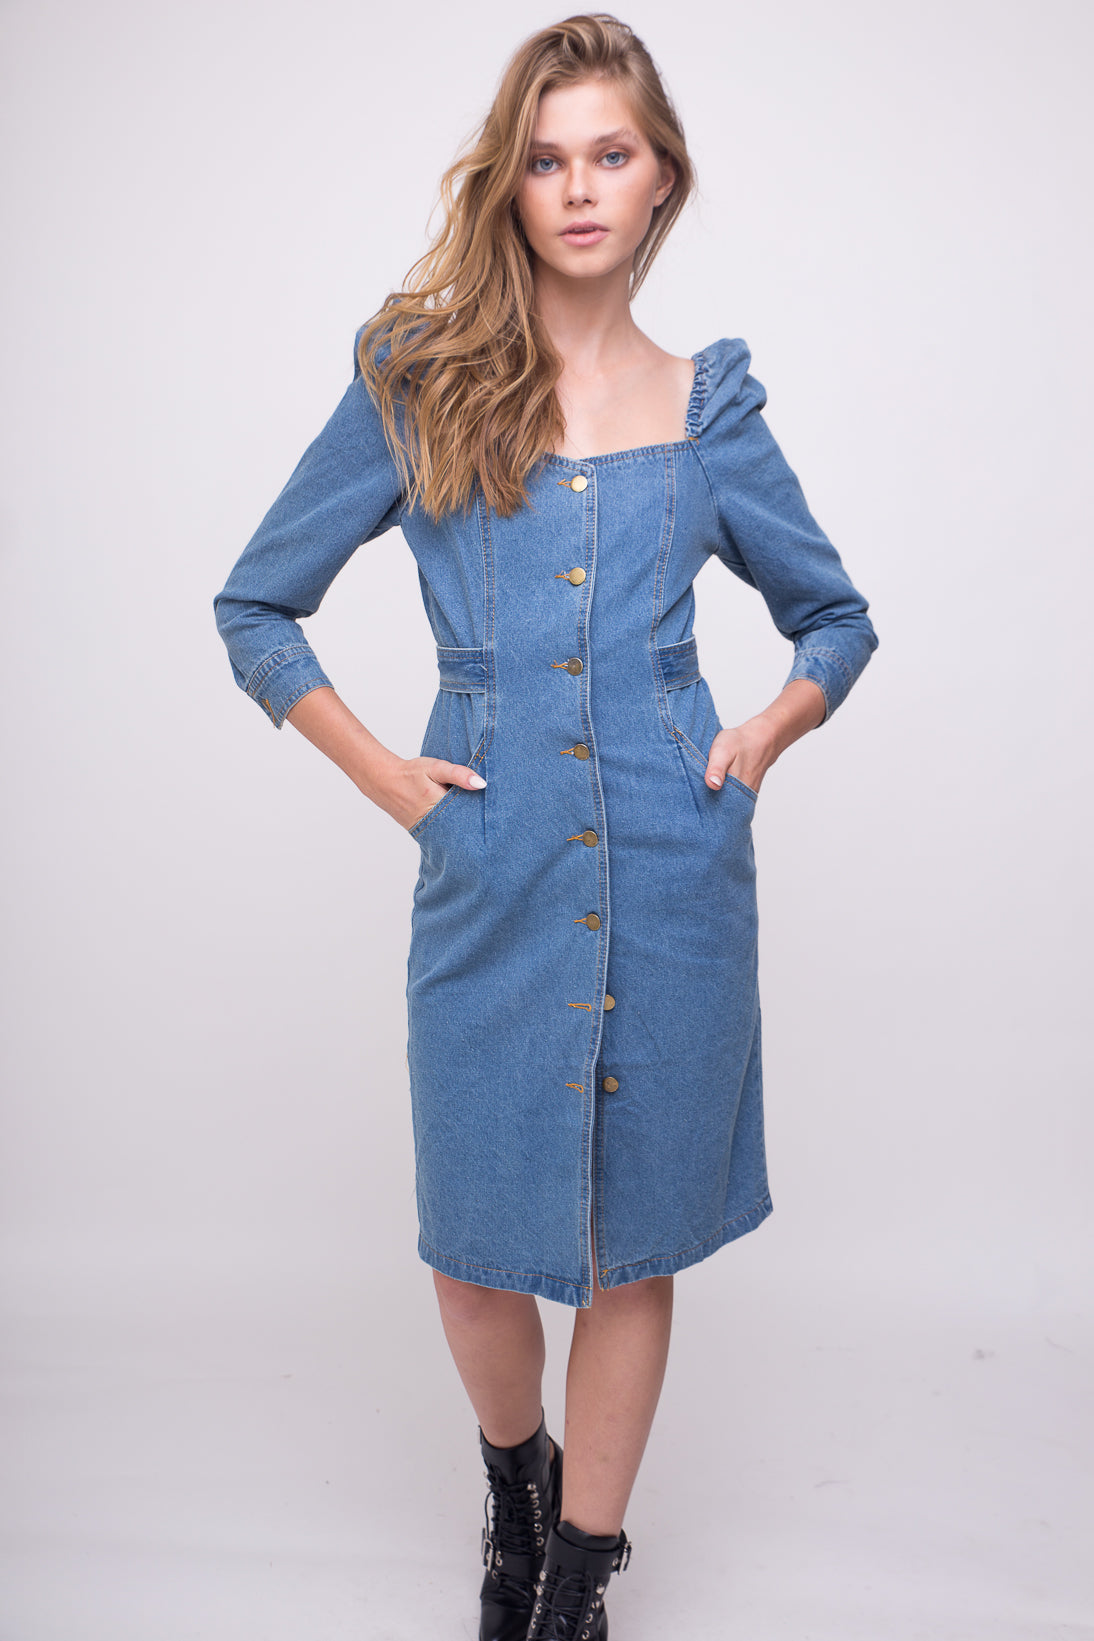 Long sleeve button down impact shoulder denim dress.